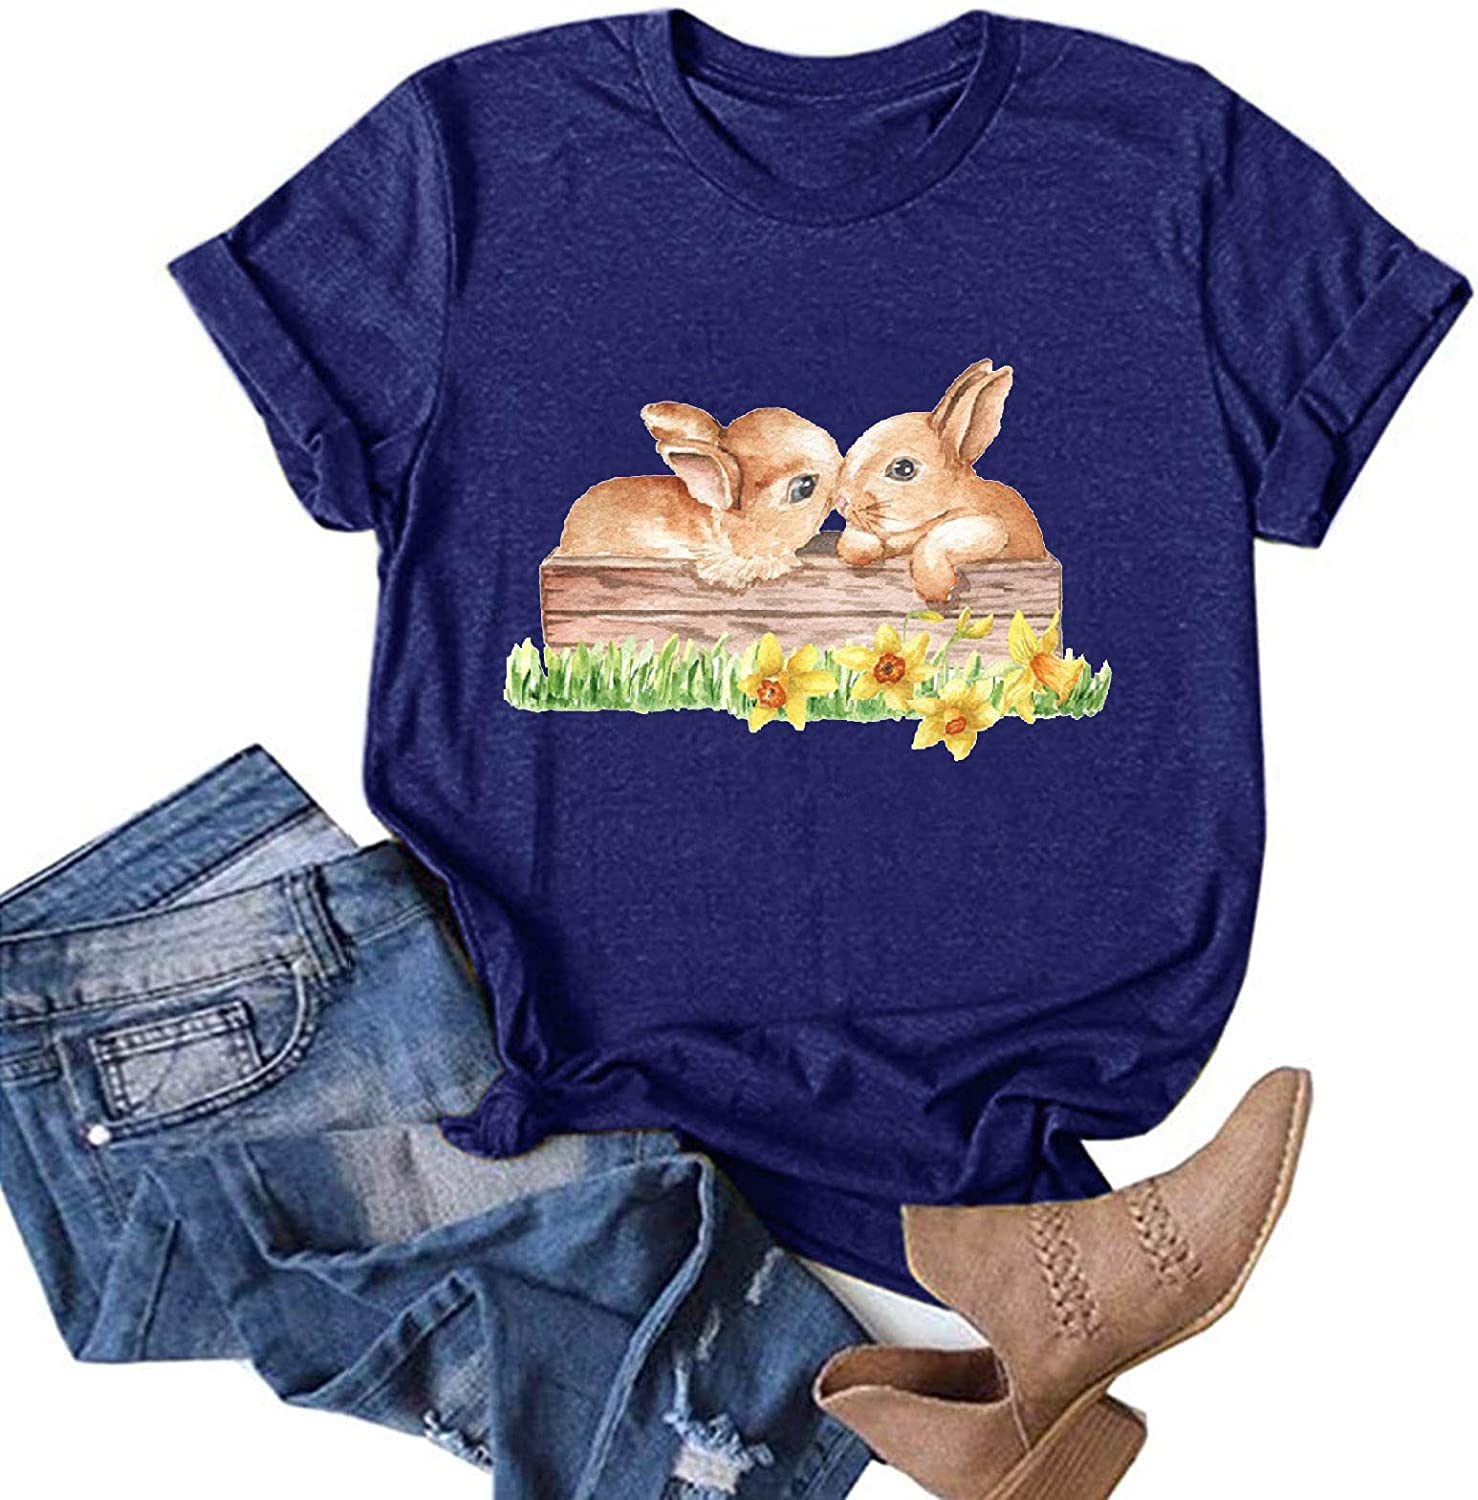 Graphic Tees for Women,Womens Casual Summer Easter Cute Graphic Short Sleeve T Shirts Tees Tops Tunics Blouses